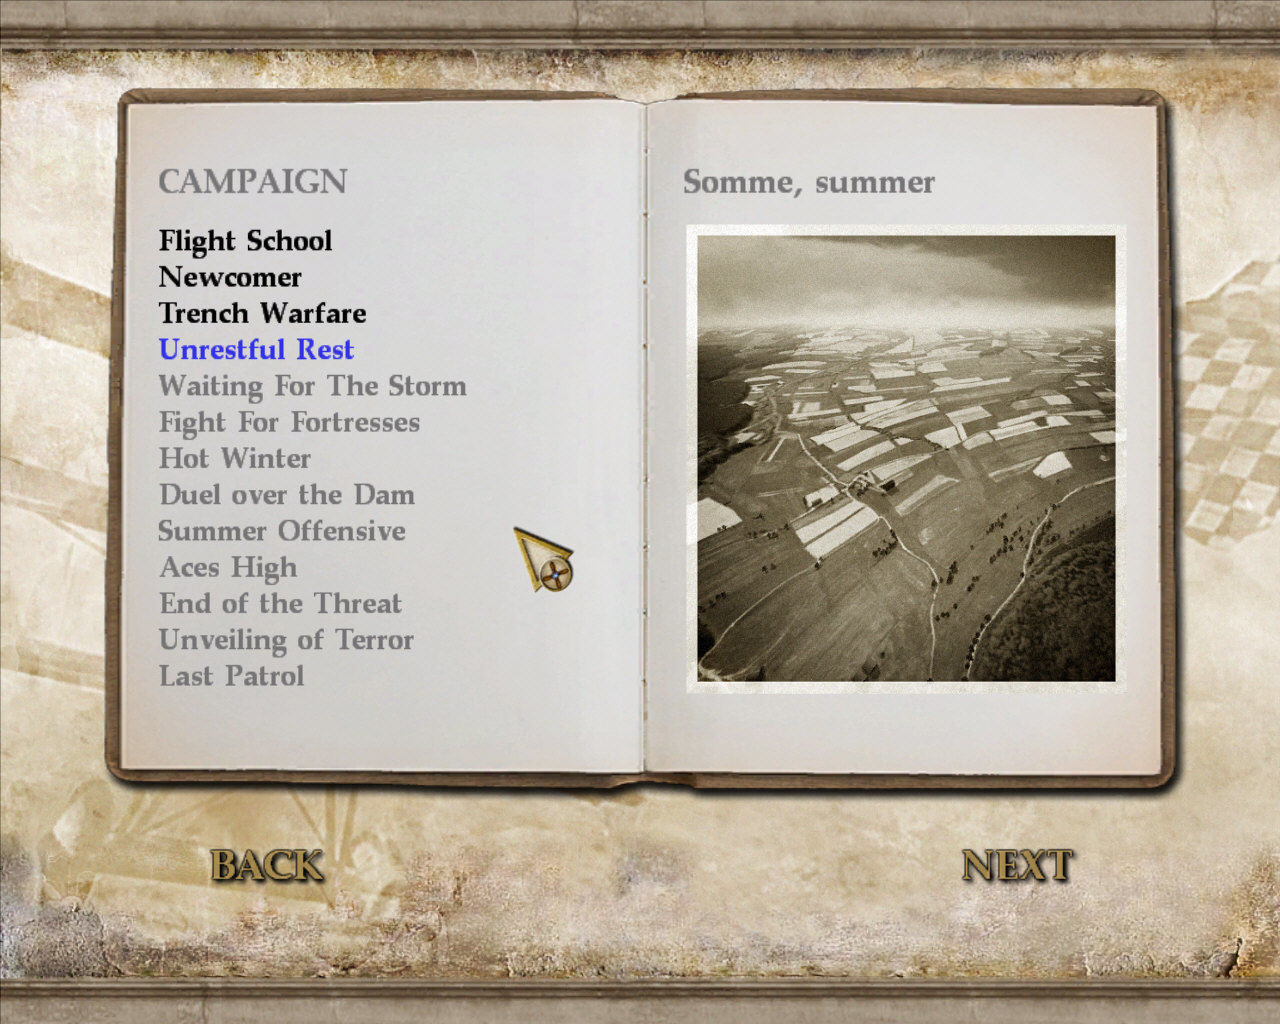 Wings of War Windows The campaign menu